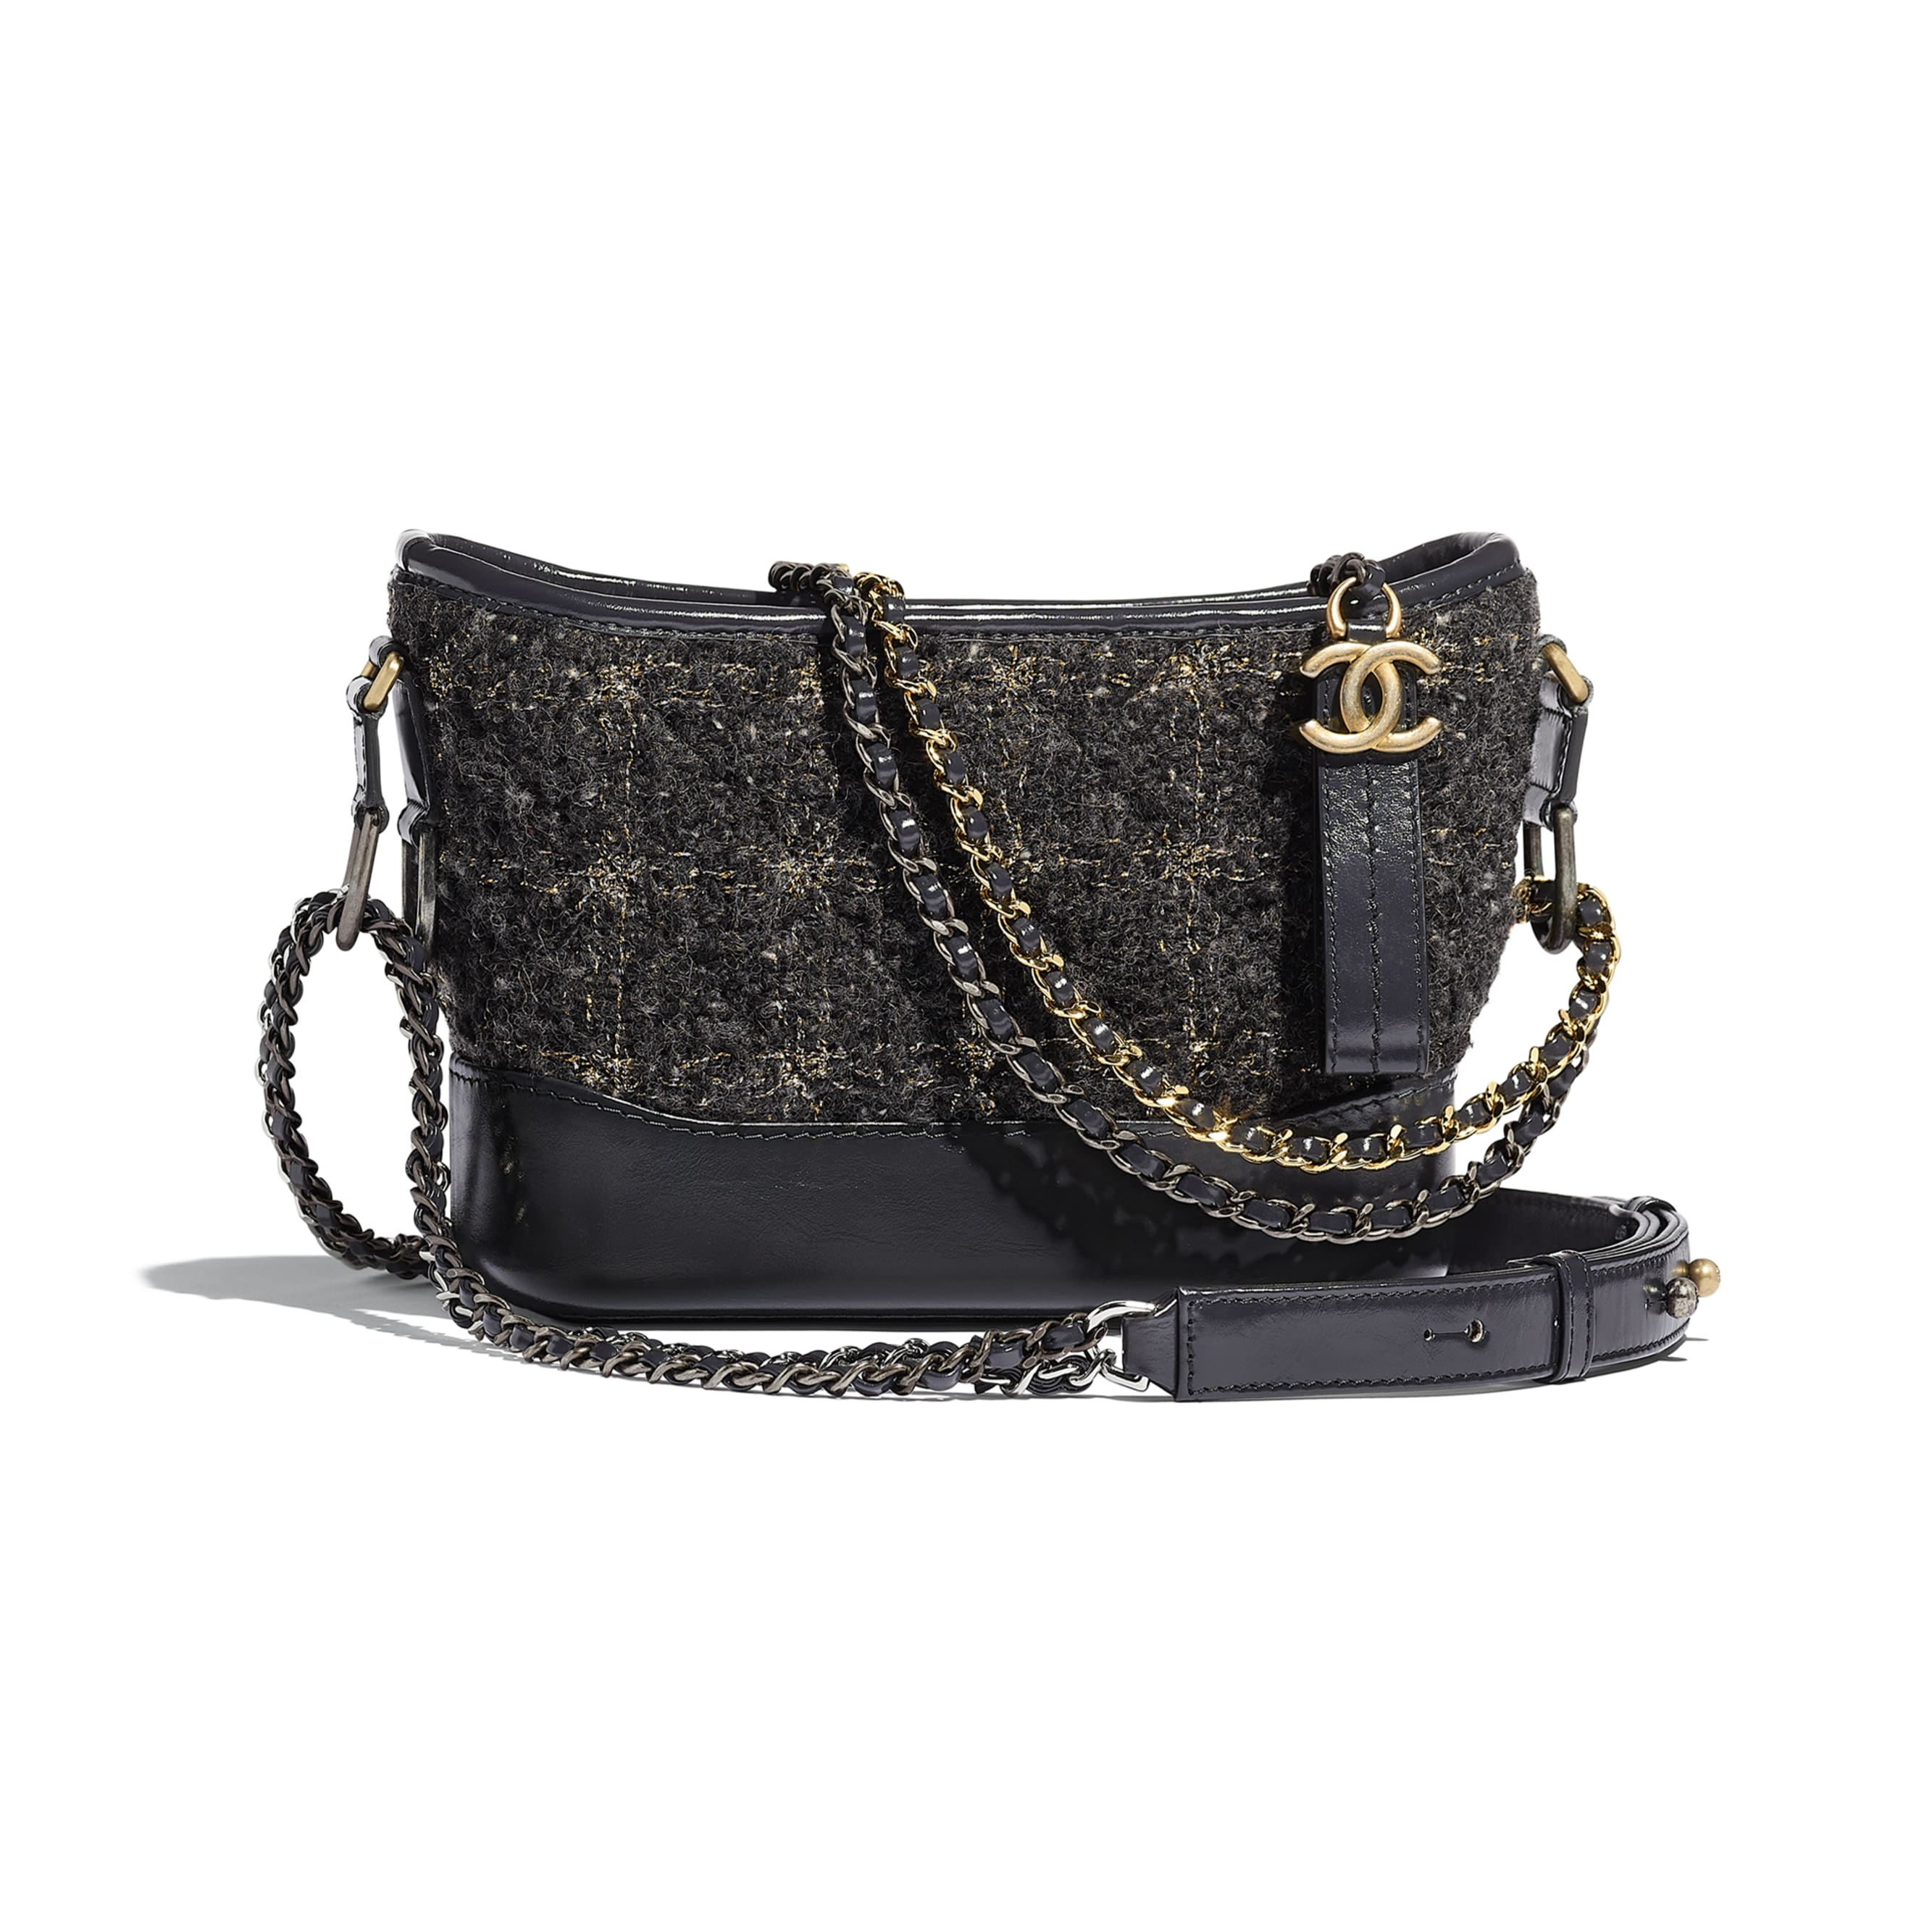 CHANEL'S GABRIELLE Small Hobo Bag - Gray, Golden & Silver - Wool Tweed, Calfskin, Gold-Tone & Silver-Tone Metal - Default view - see standard sized version